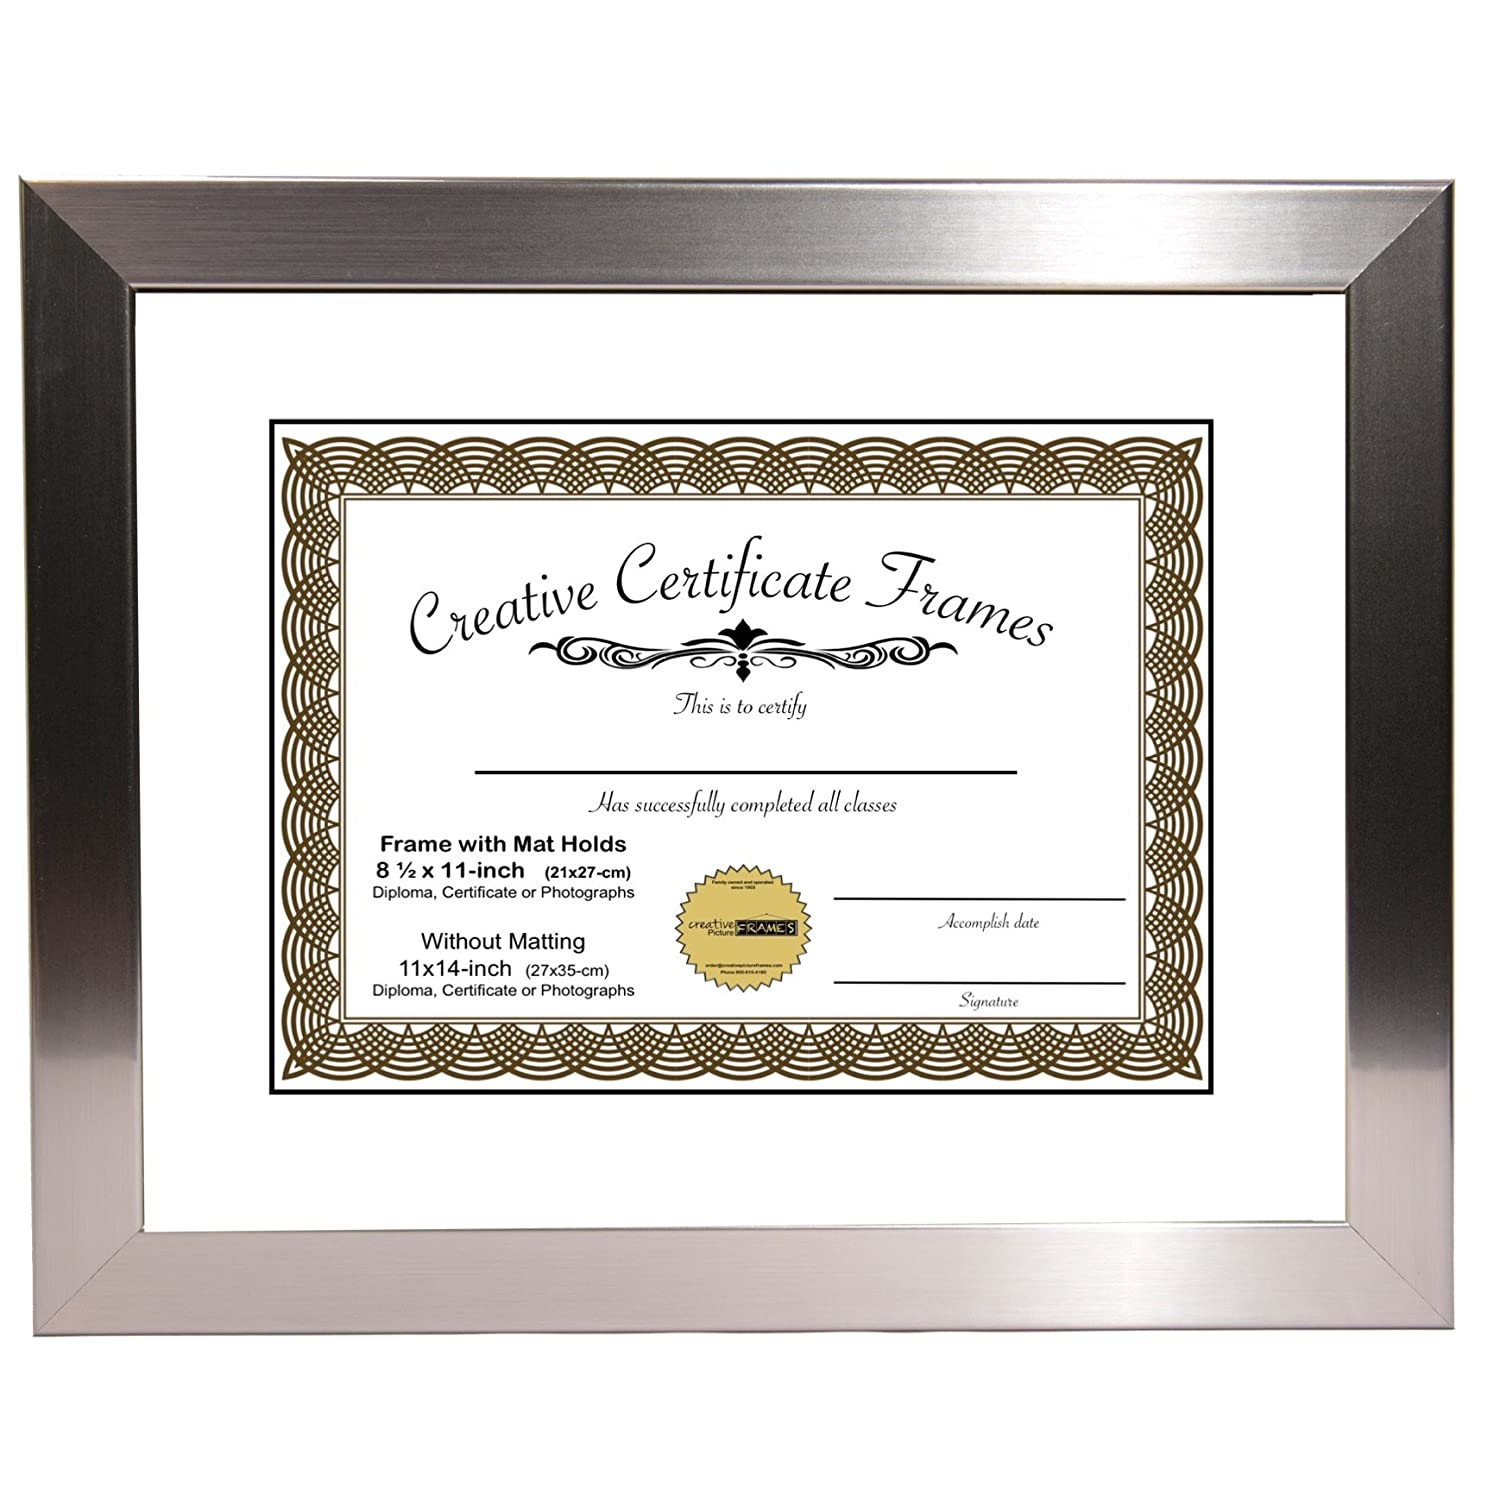 CreativePF [Y8SH-11x14ss-w] Stainless Steel Document Frame Displays 8.5